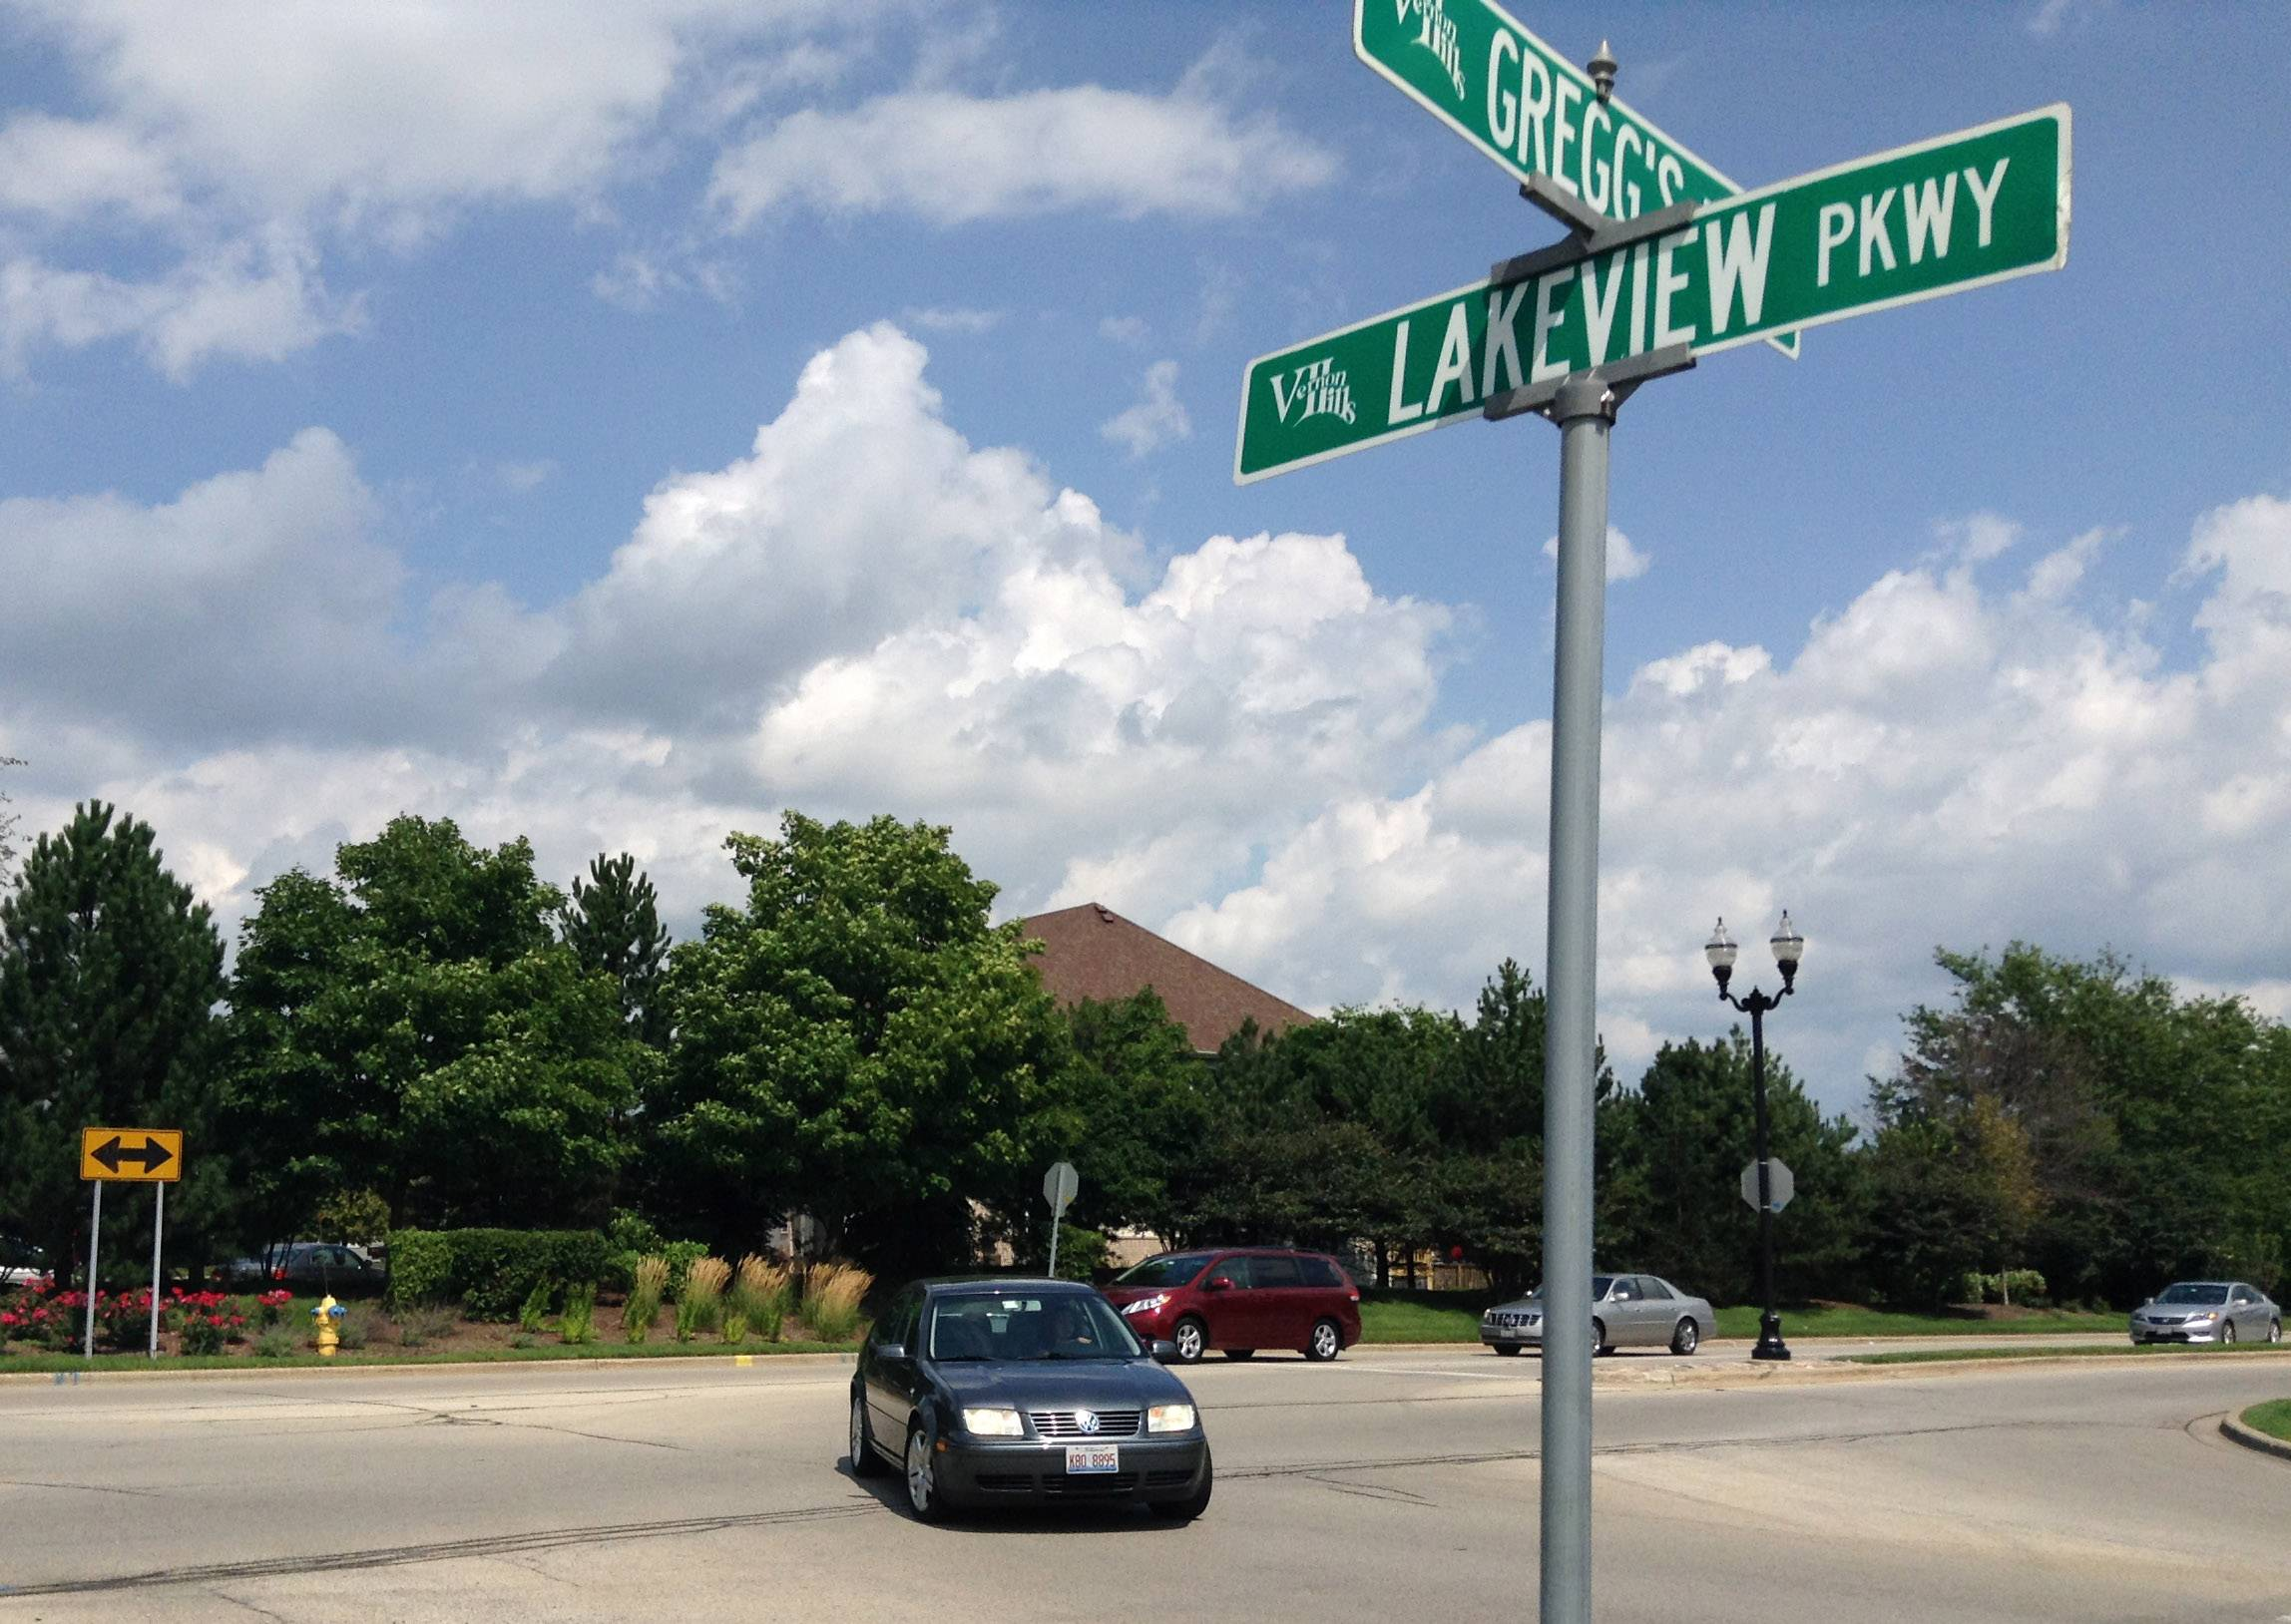 Traffic signal to be installed on Gregg's Parkway in Vernon Hills